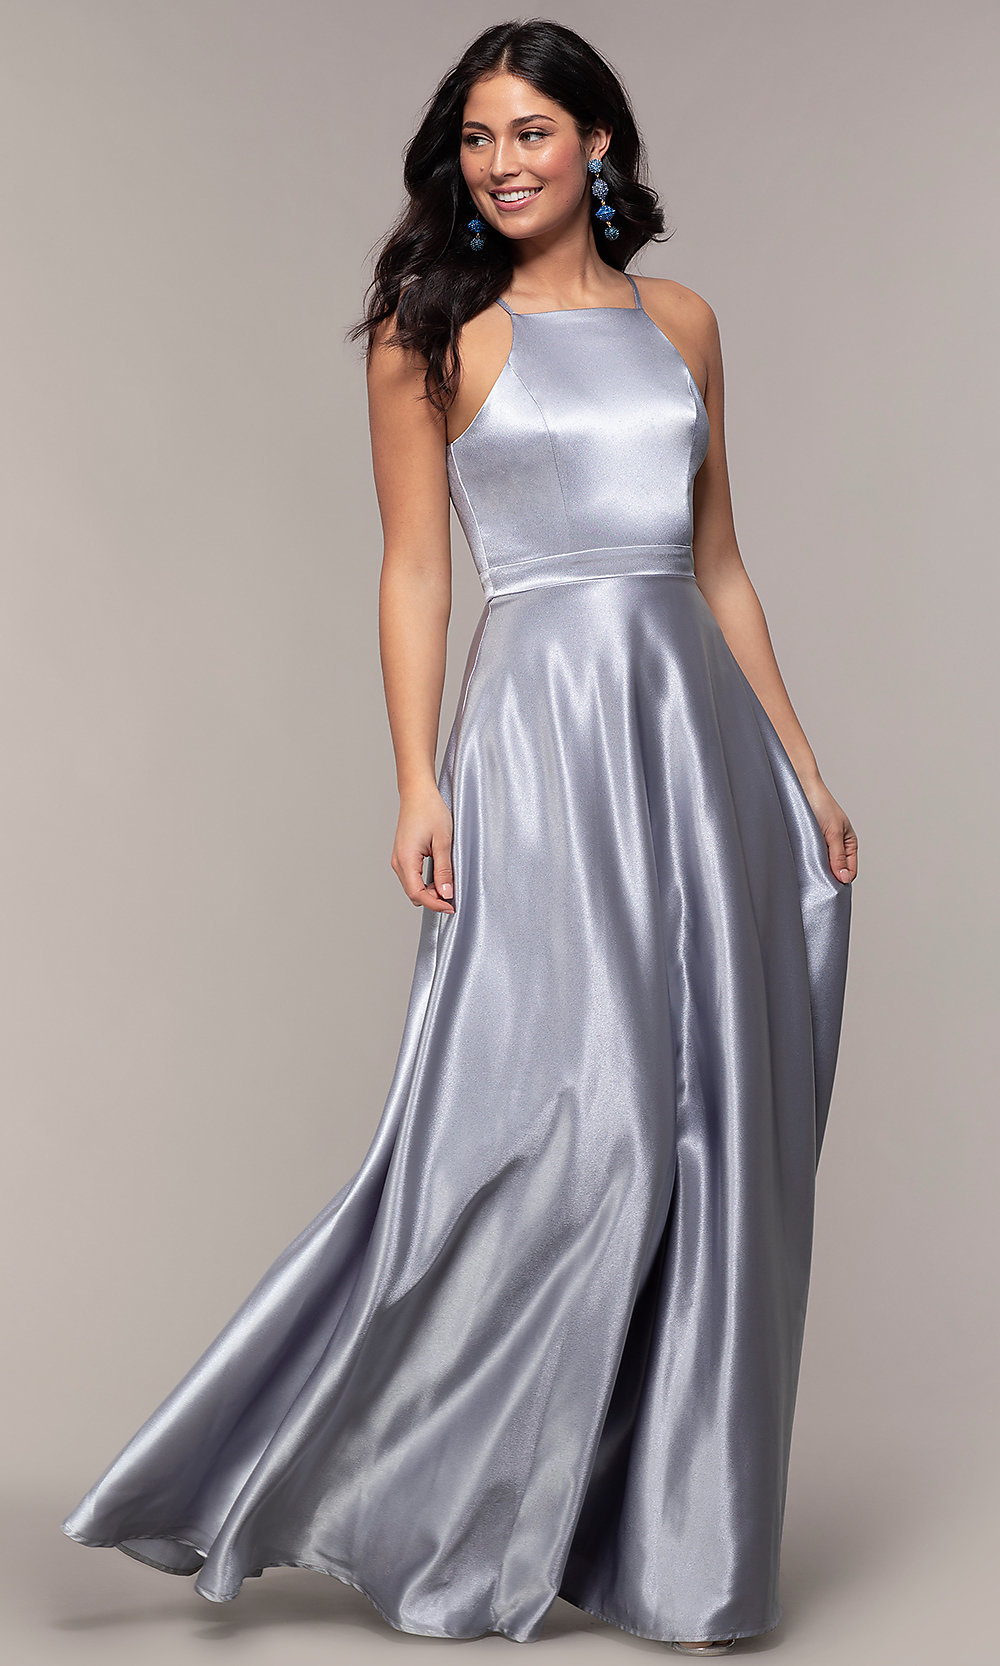 7a32765a499 Where To Buy Inexpensive Prom Gowns - Gomes Weine AG